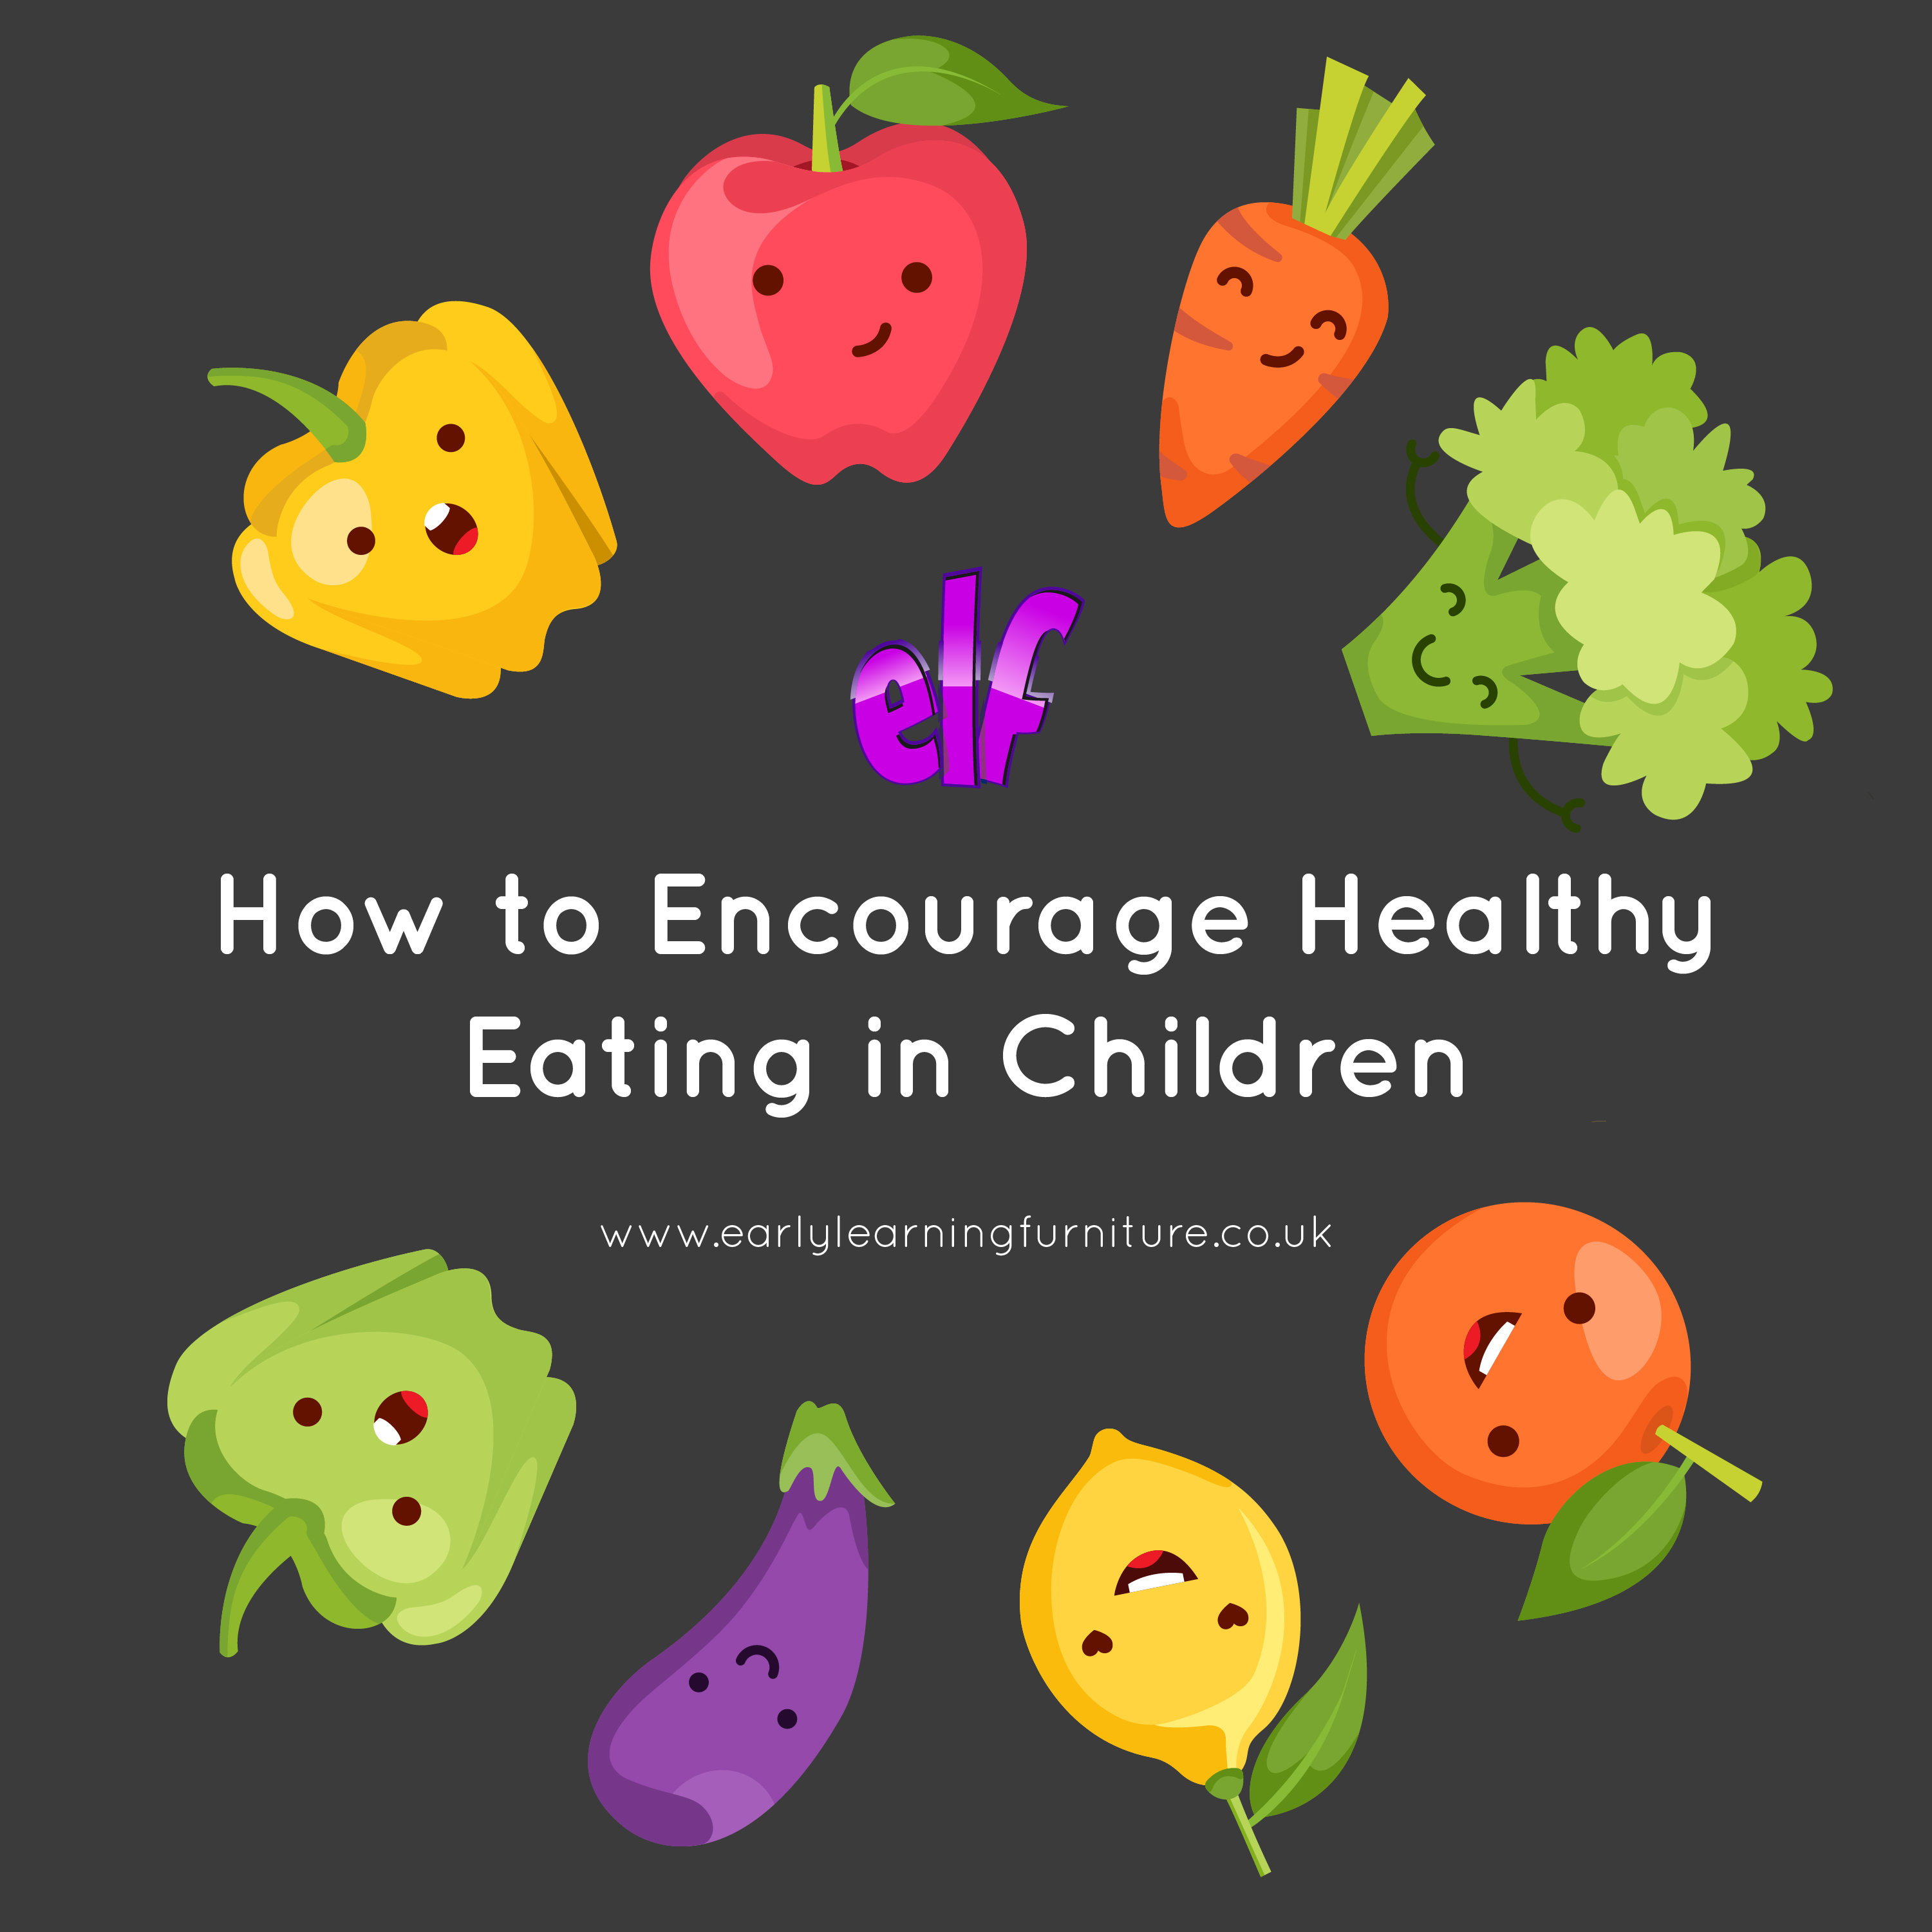 How to Encourage Healthy Eating in Children